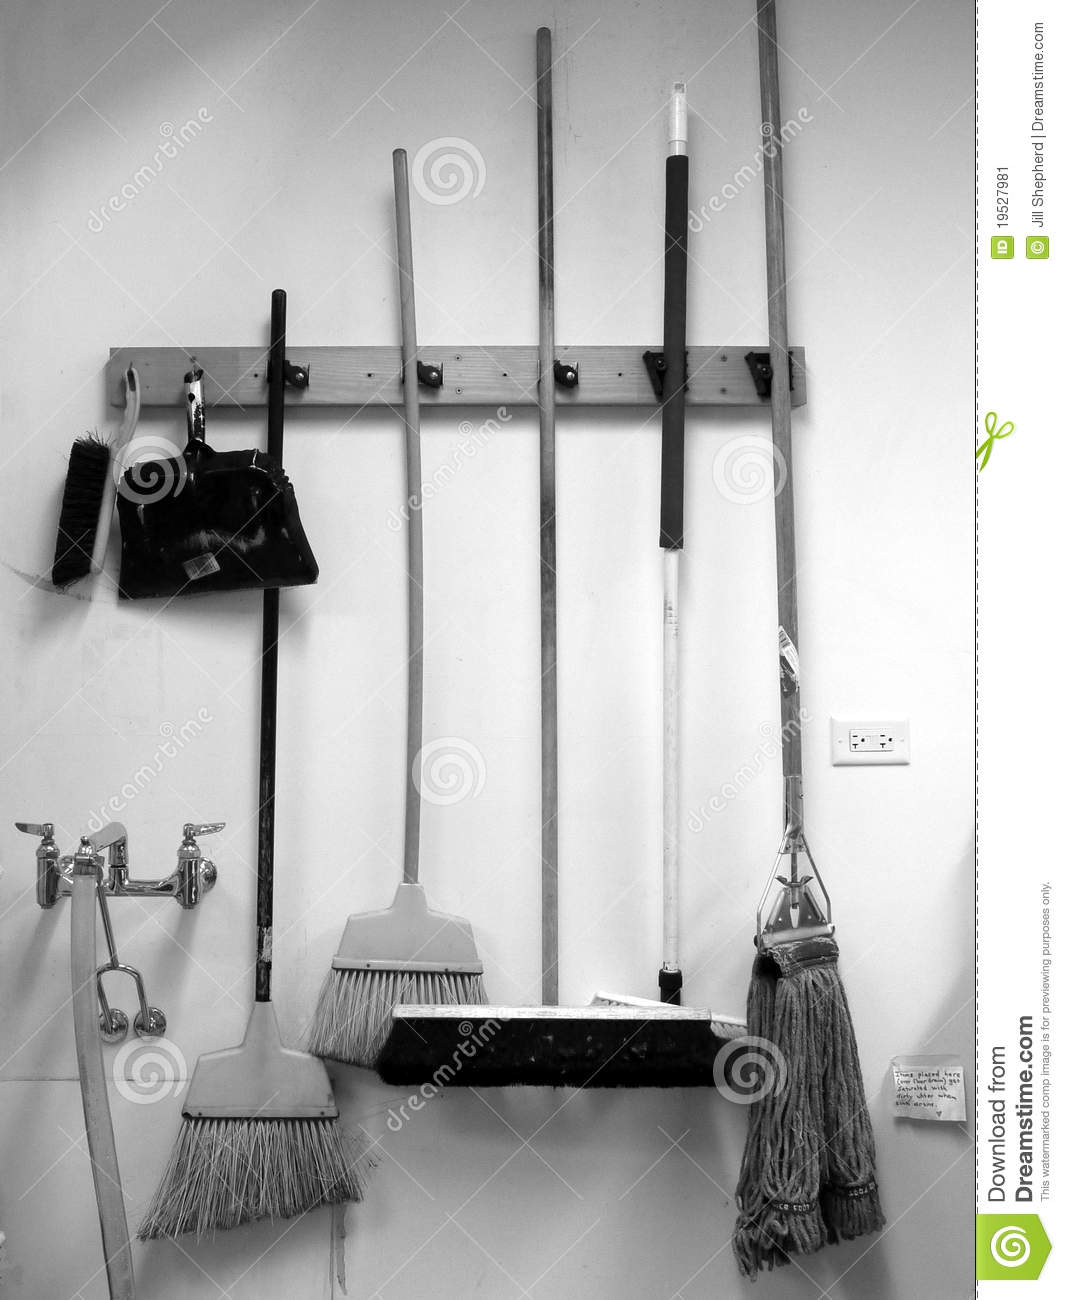 Commercial Cleaning Brooms Dustpan And Mop Stock Image